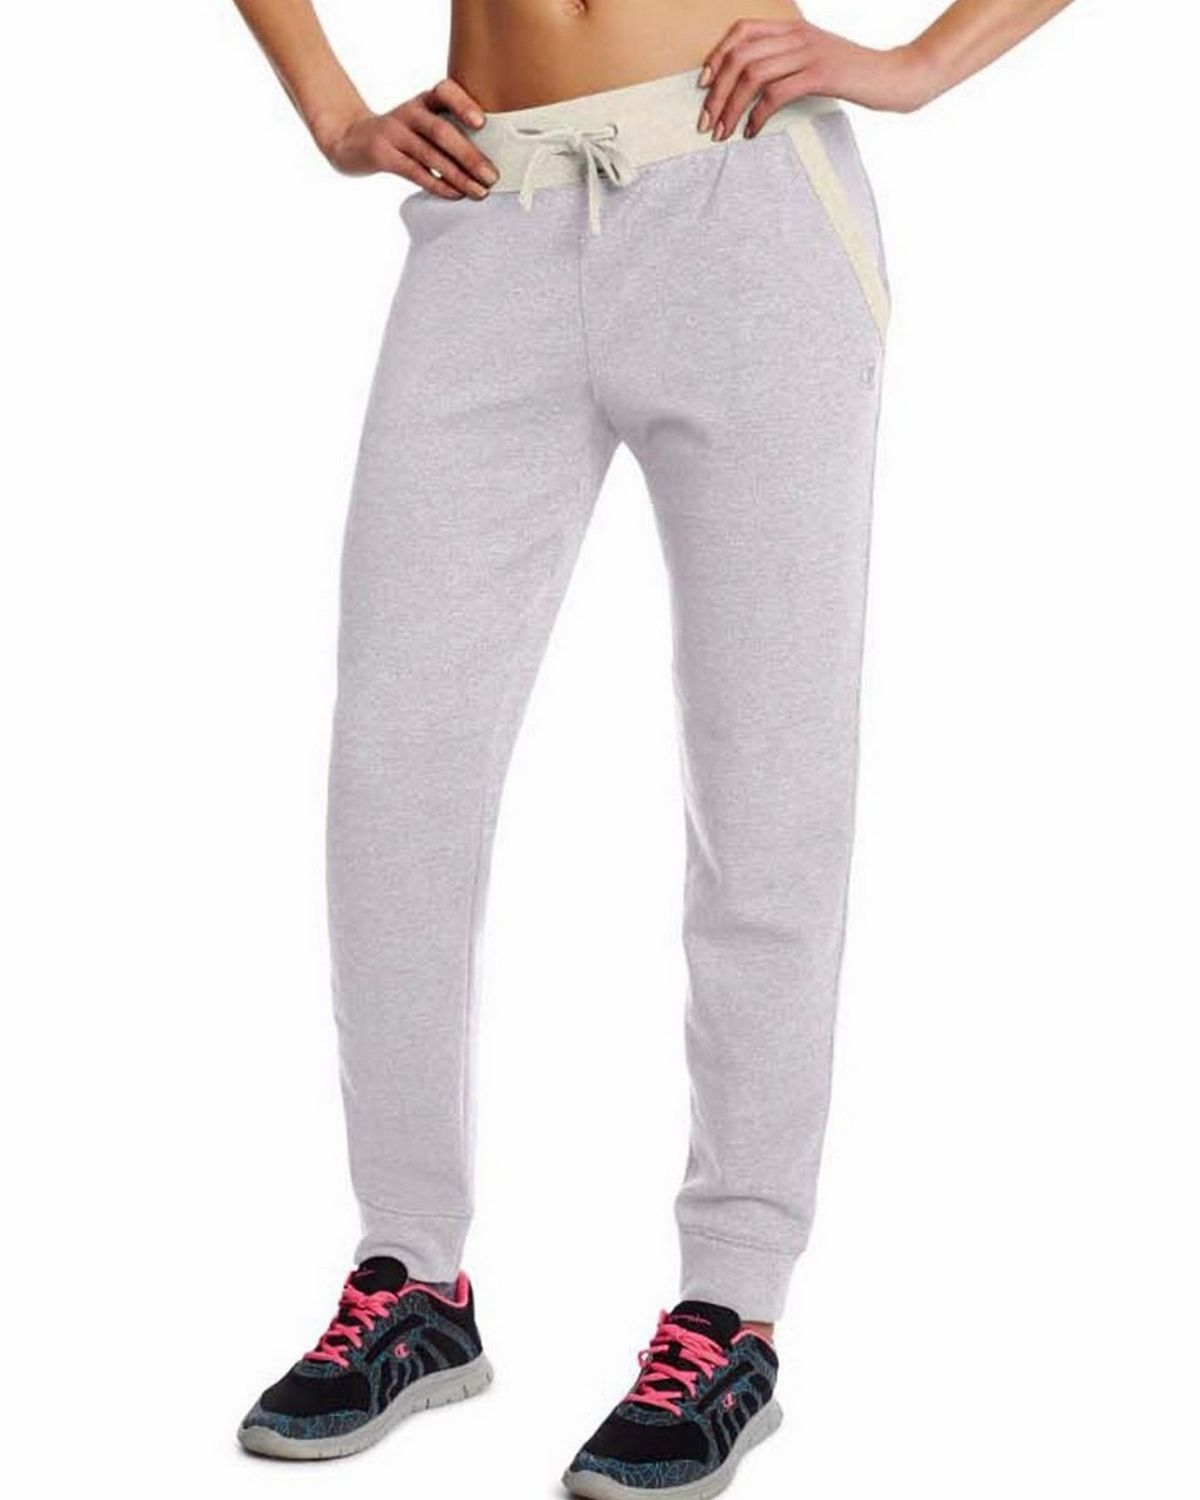 Champion M0937 Womens Fleece Jogger Pants - Oxford Heather/Oatmeal Heather - L M0937